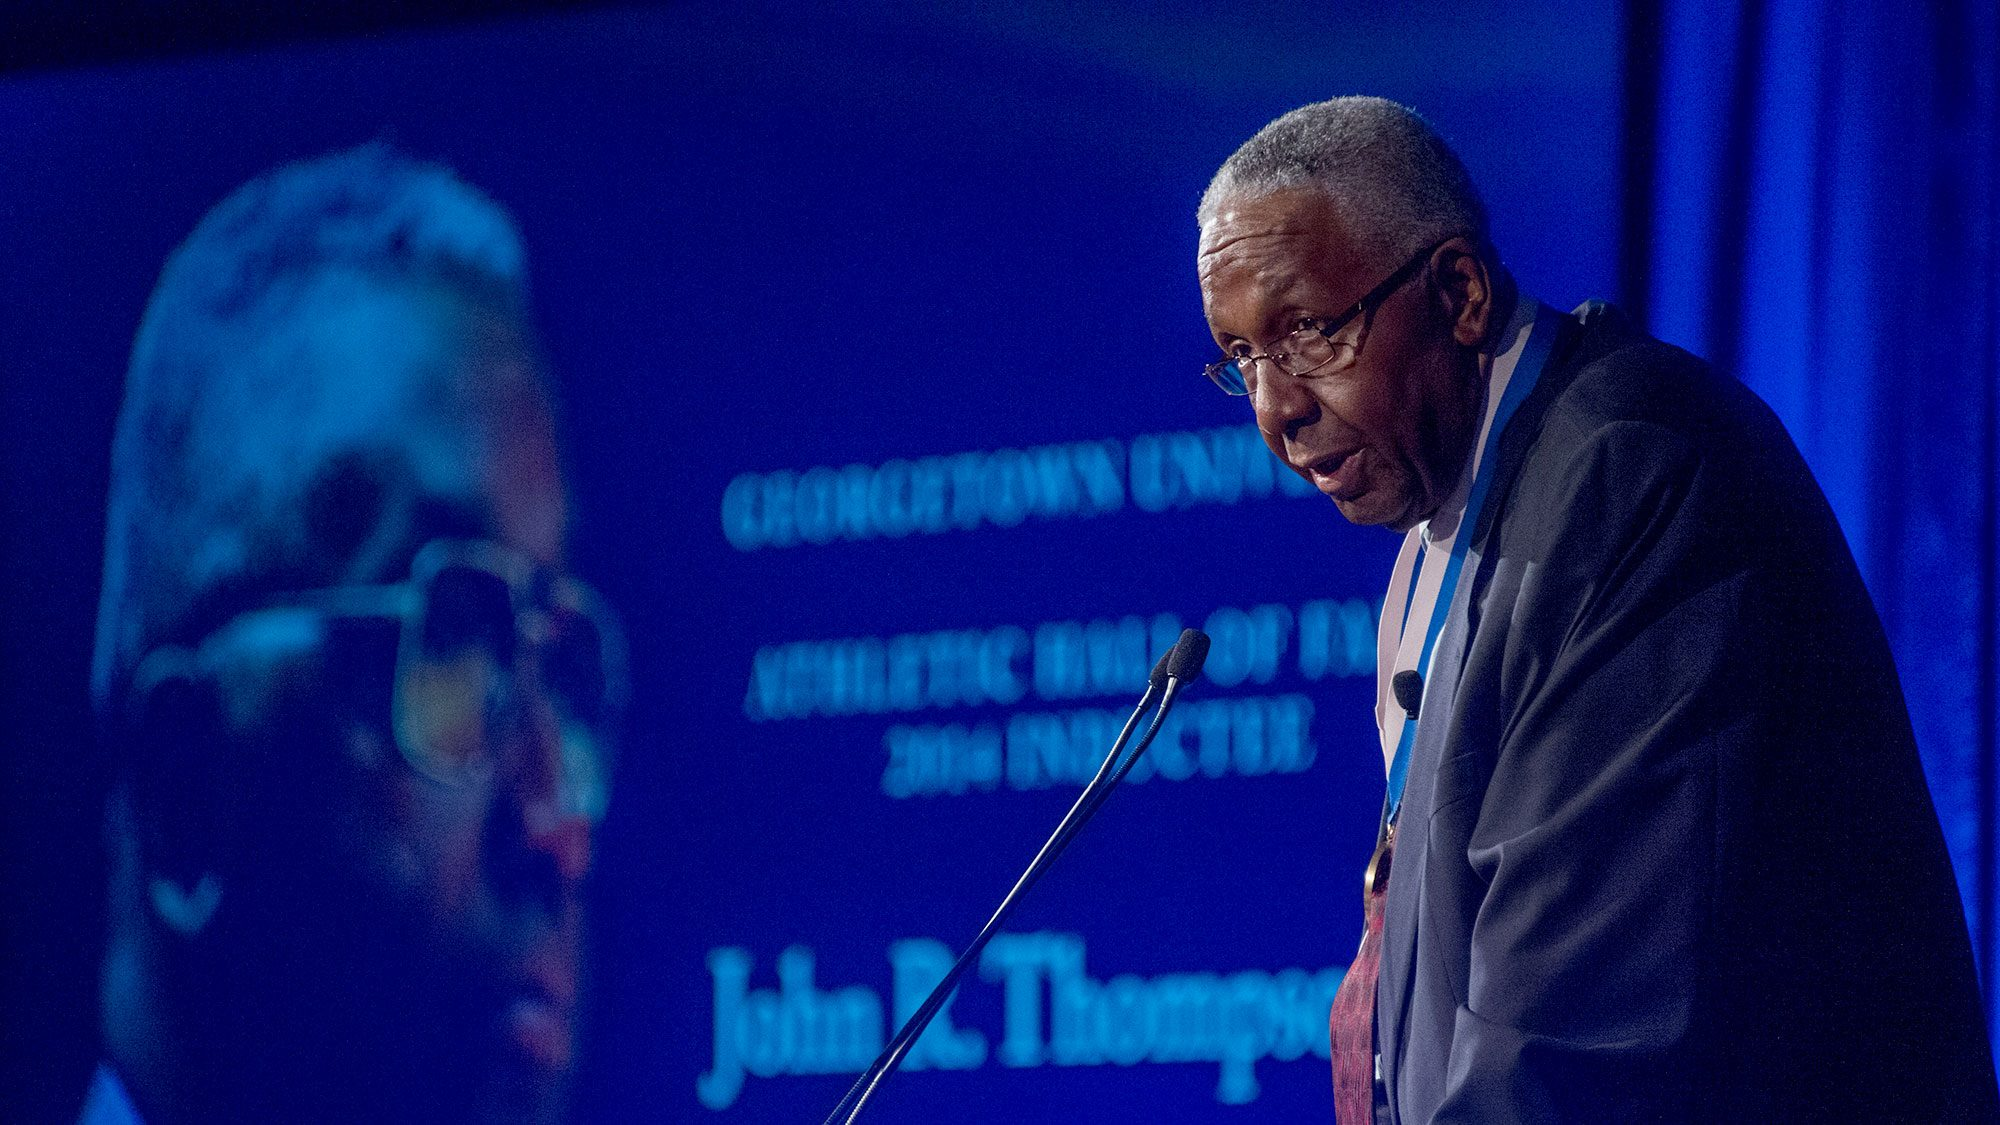 John Thompson Jr. stands on stage with a tribute to him projected in the background.